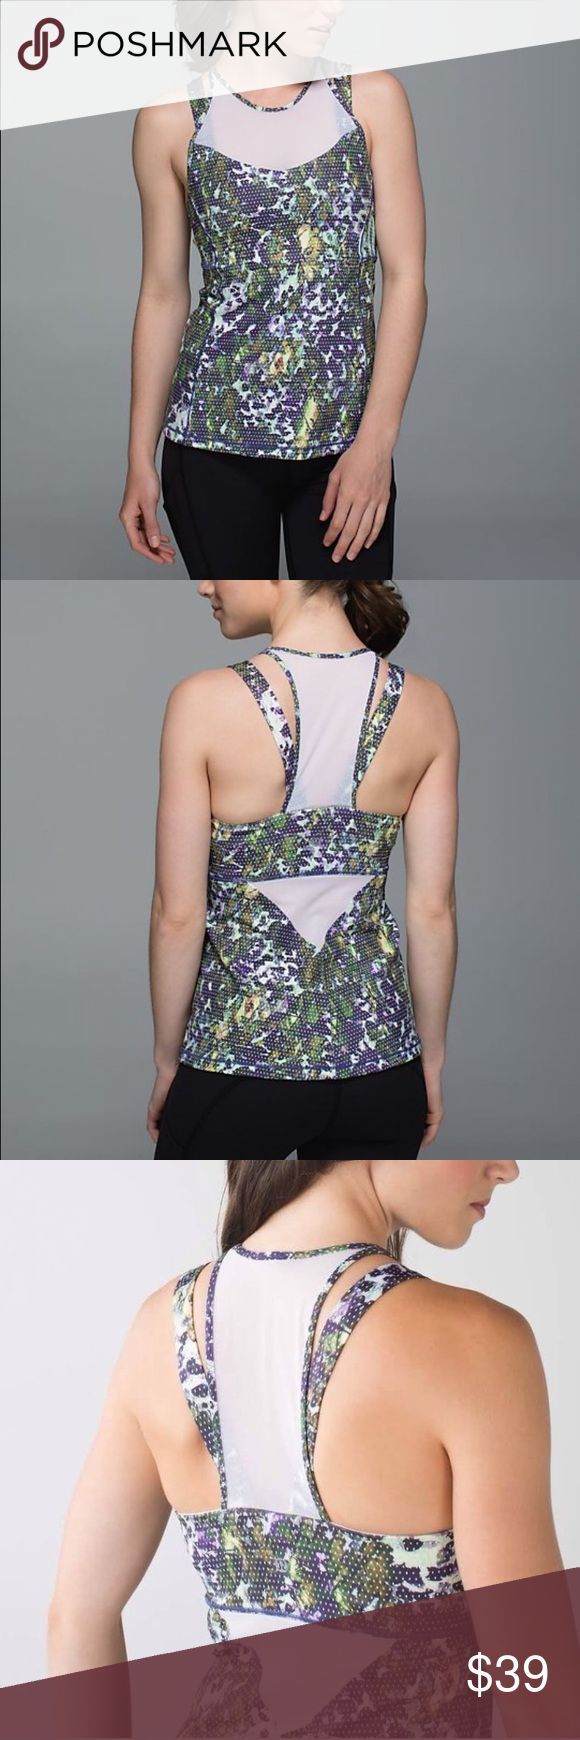 NWT Lululemon running in the city athletic tank Lululemon running in the city tank. Size 2 and size 4 available. Floral sport white multi / white color. Built in bra lululemon athletica Tops Tank Tops